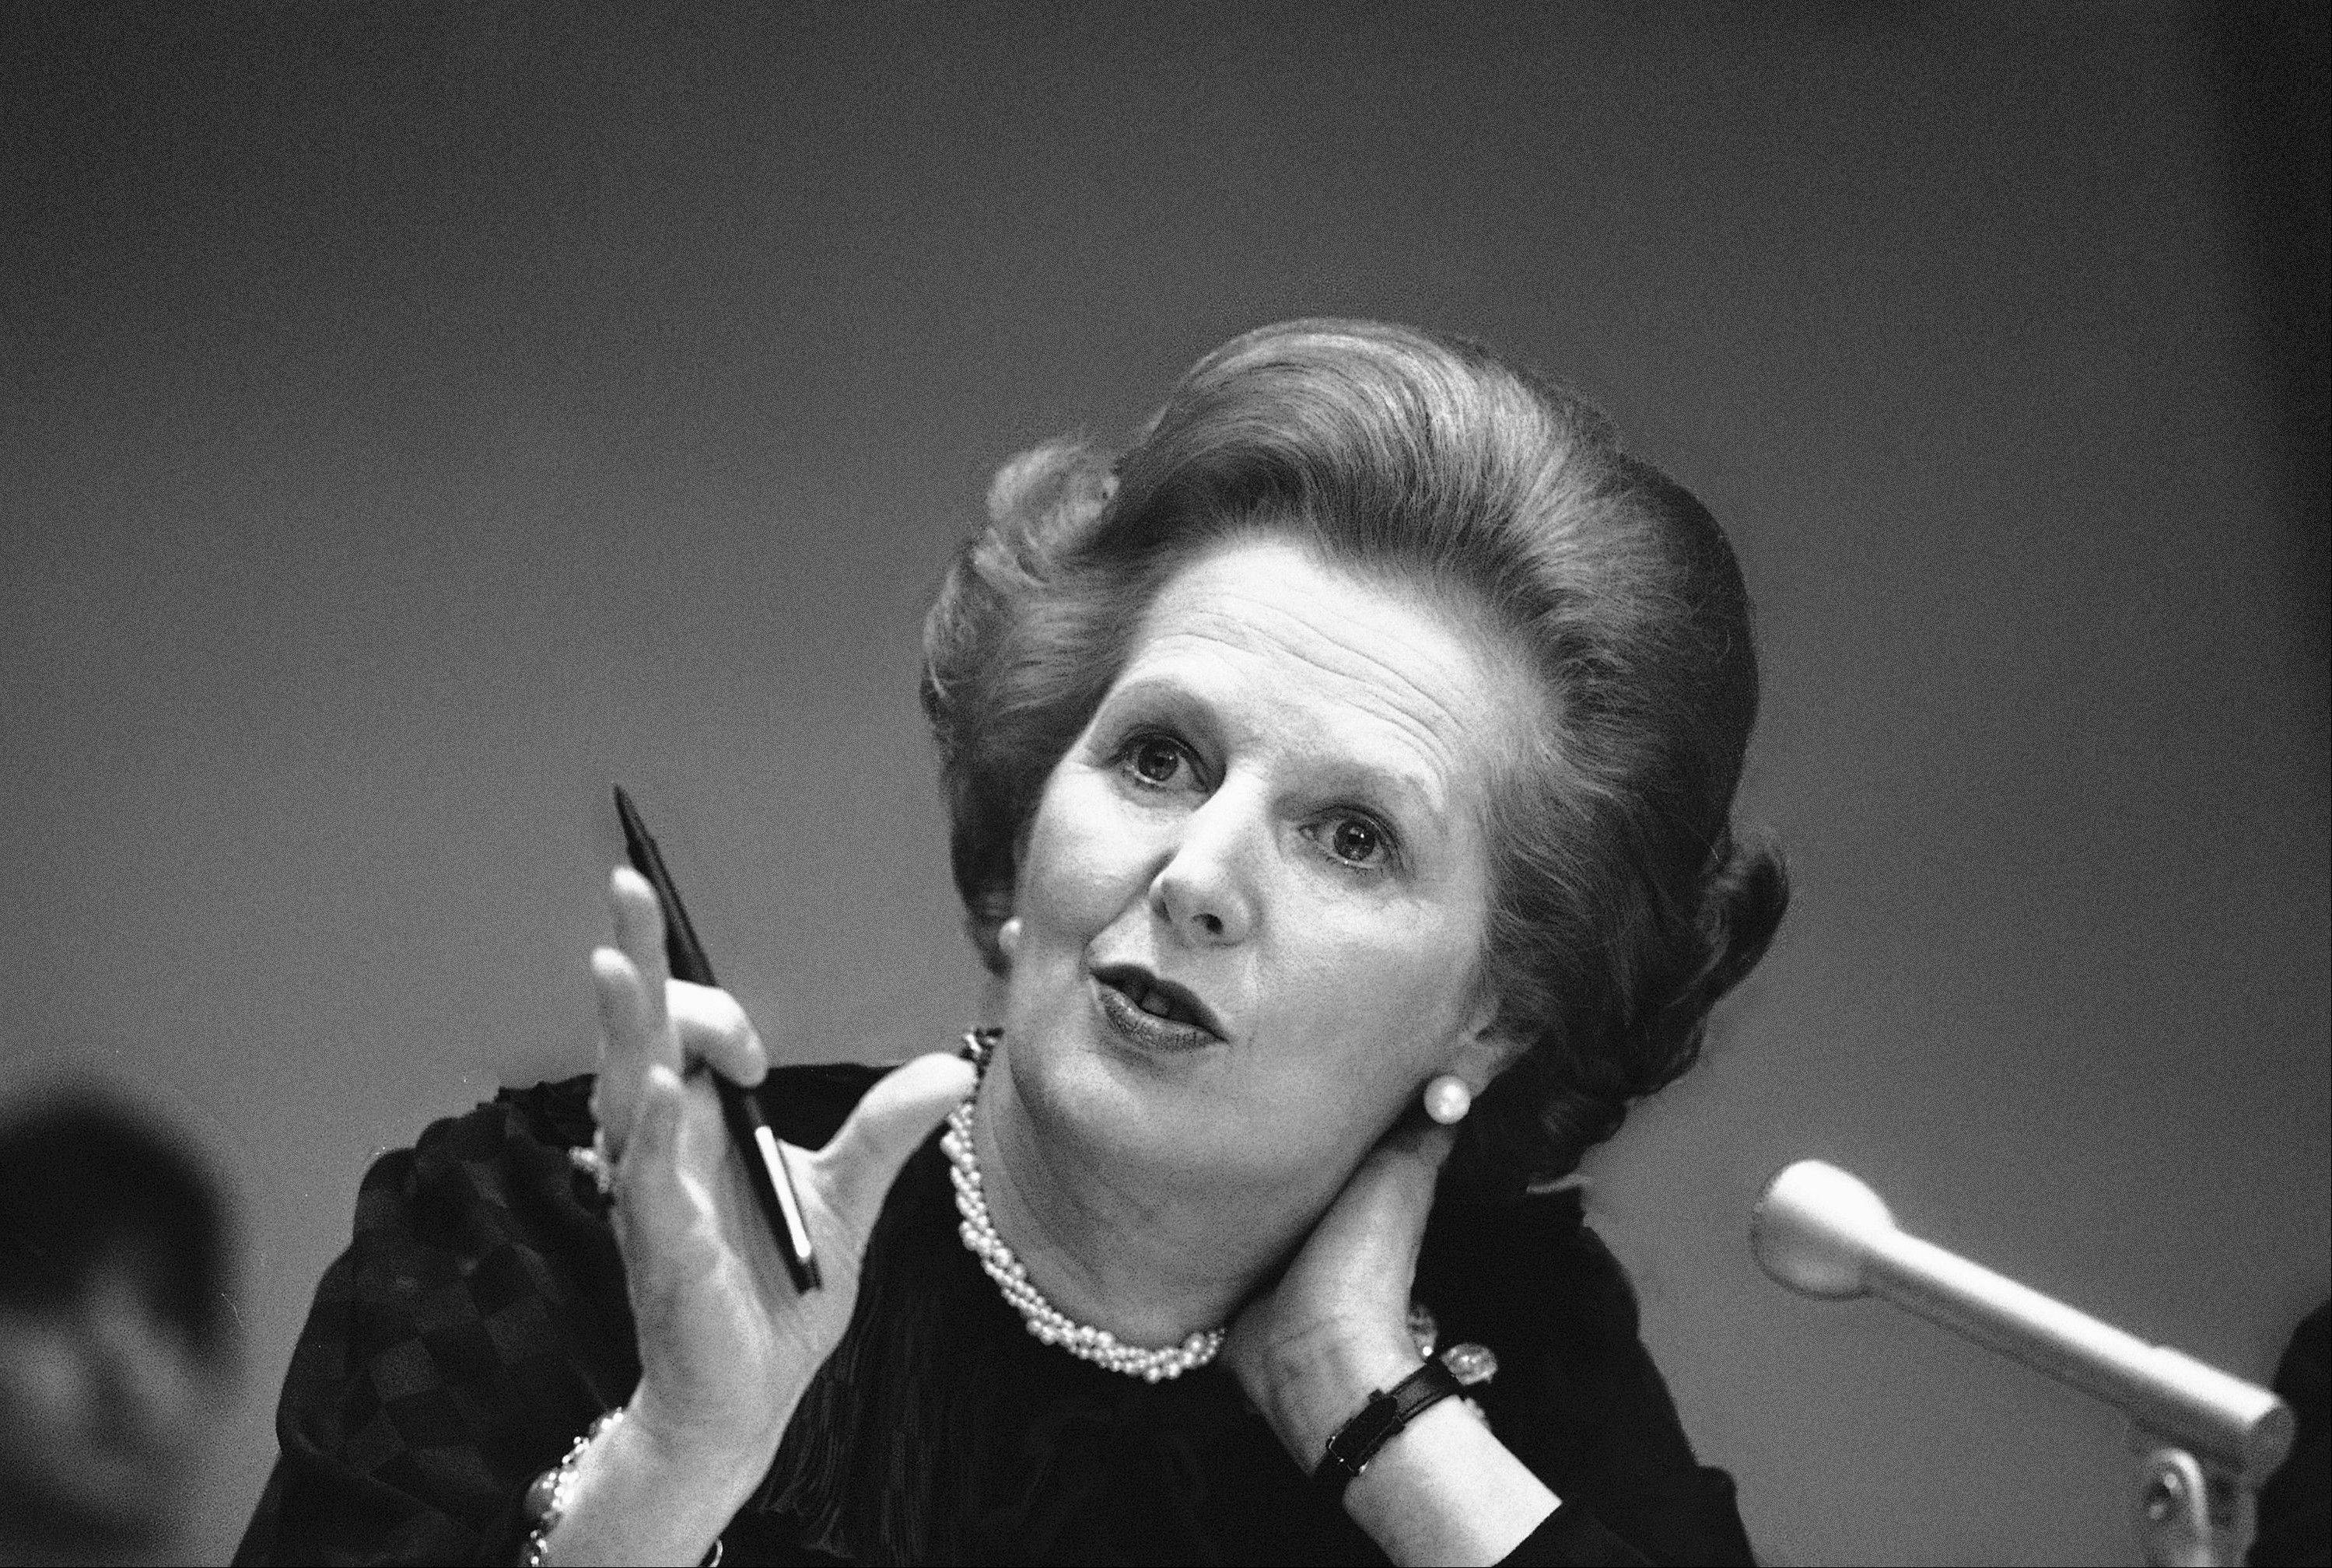 Images: Margaret Thatcher through the years